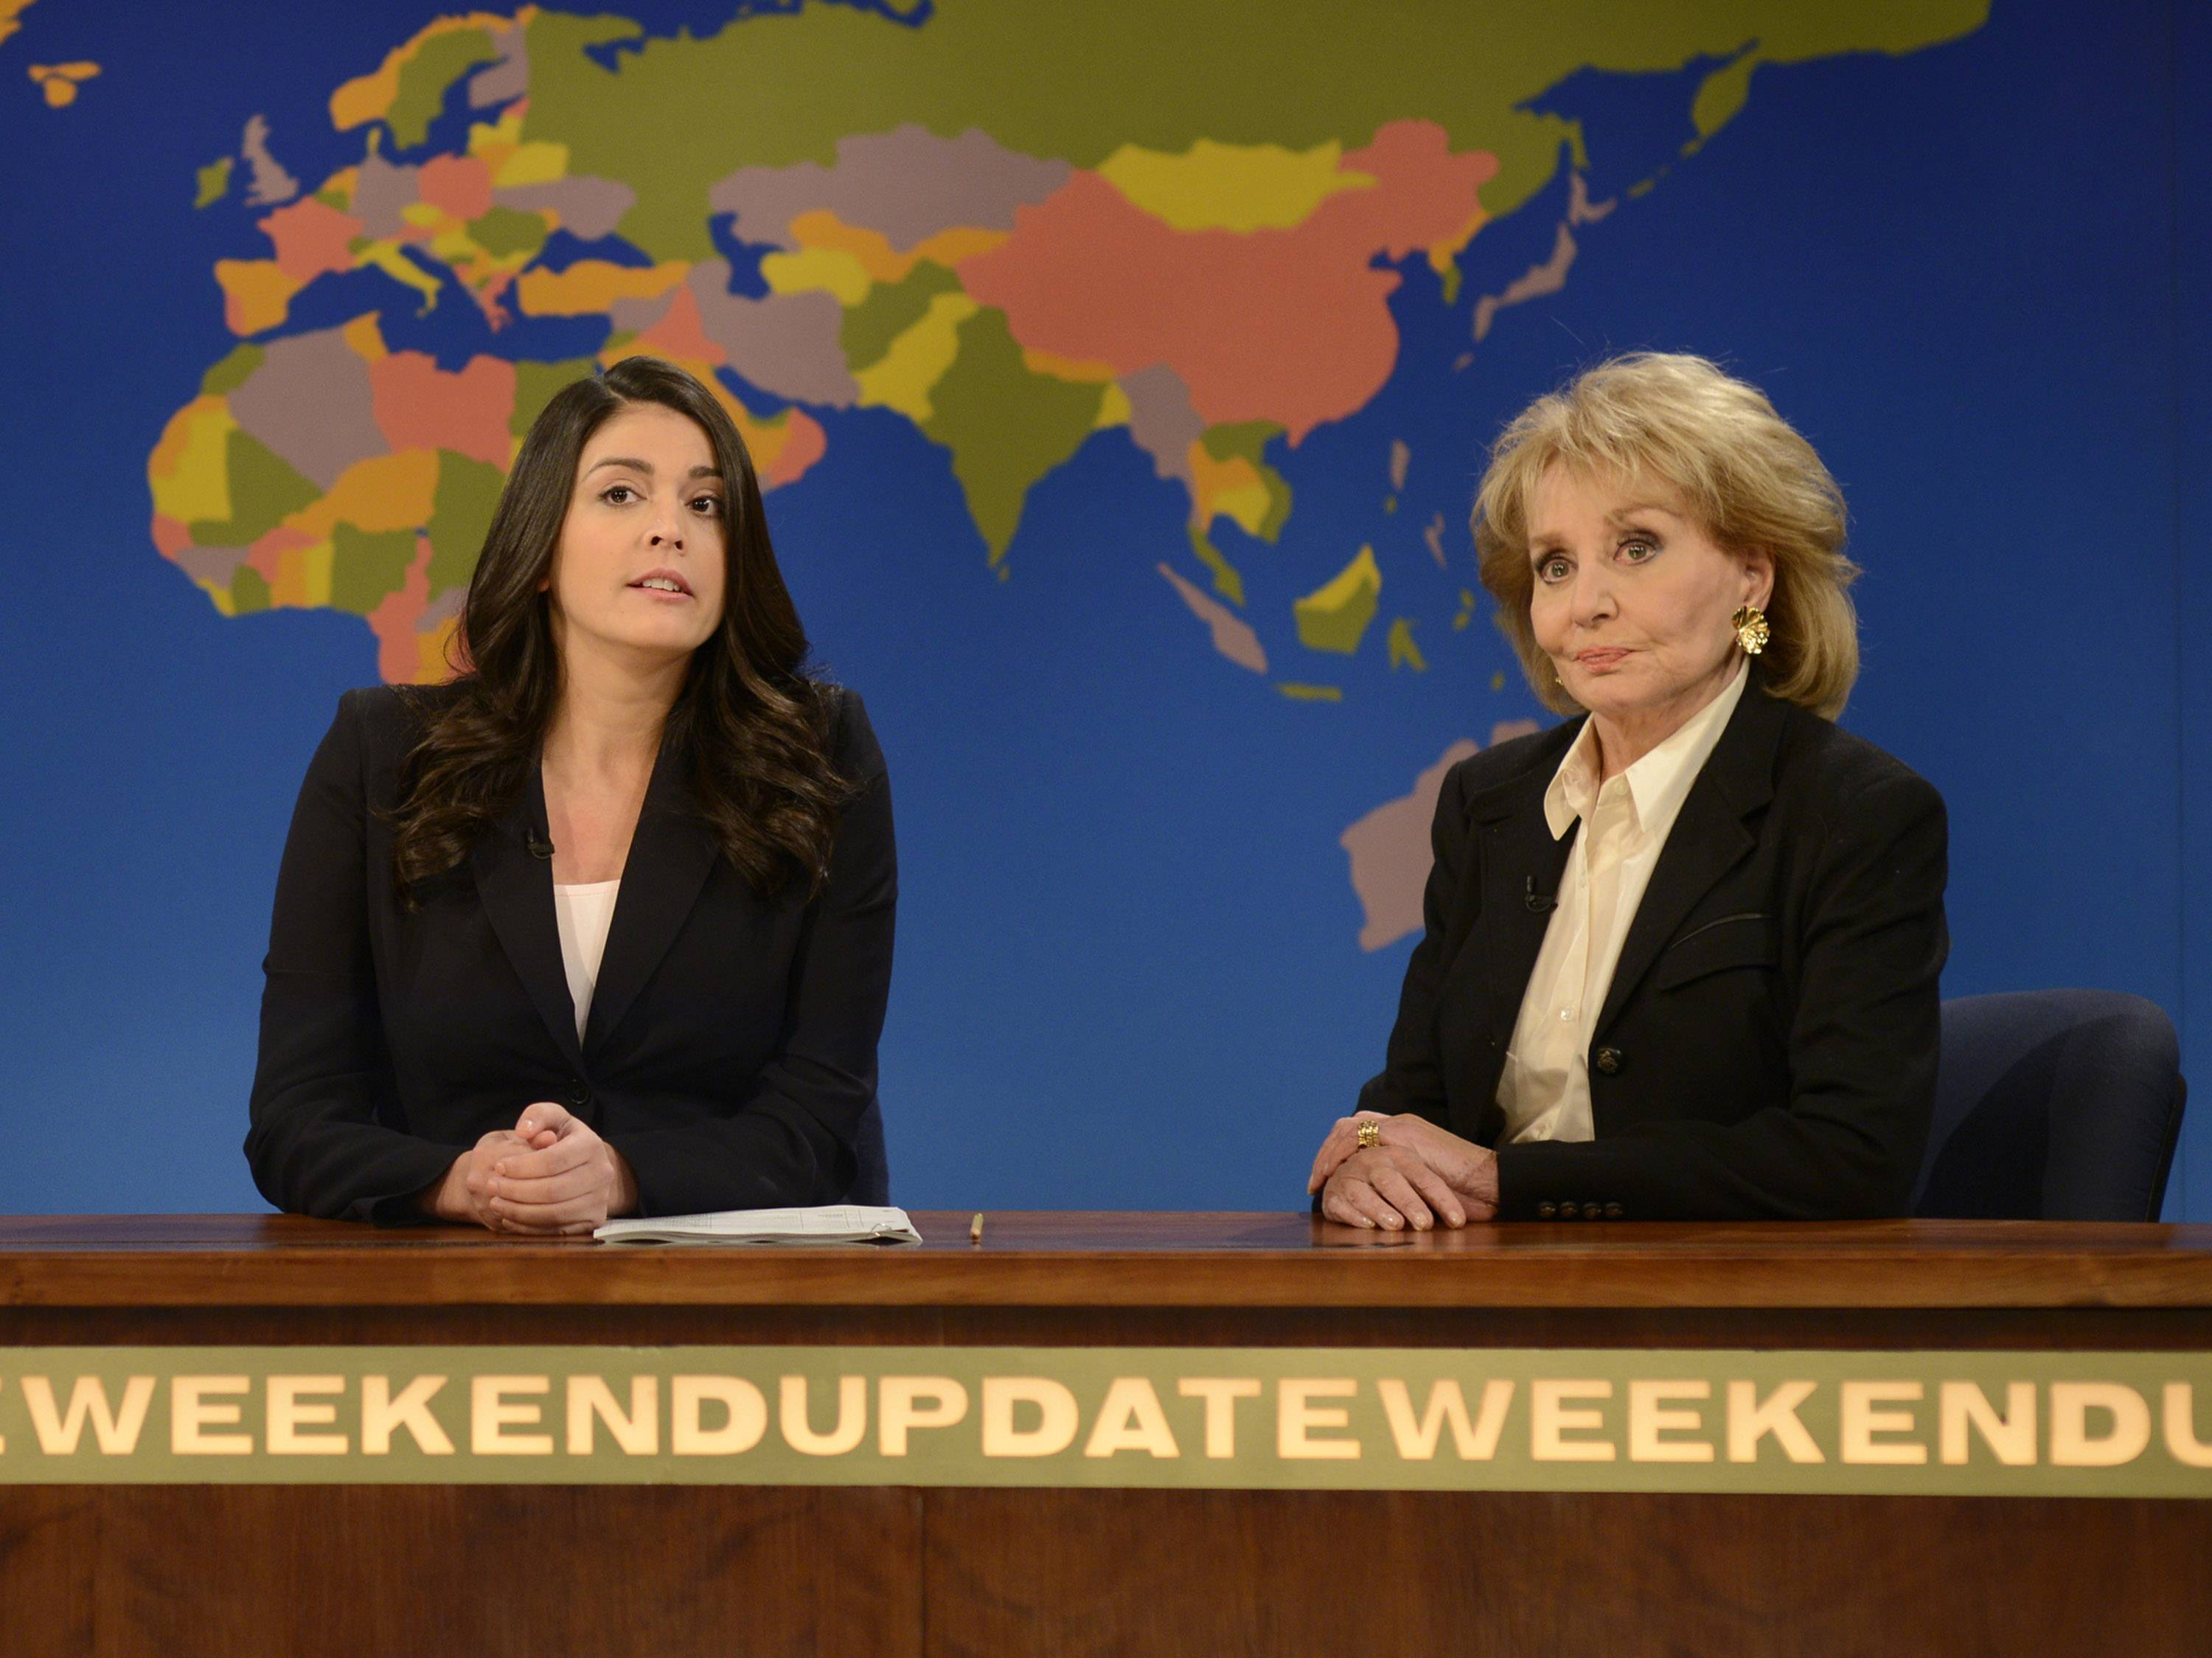 "Cecily Strong, left, appears with Barbara Walters on the Weekend Update segment during last Saturday's episode of ""Saturday Night Live"" in New York. Walters has often been parodied on the weekly sketch comedy series."